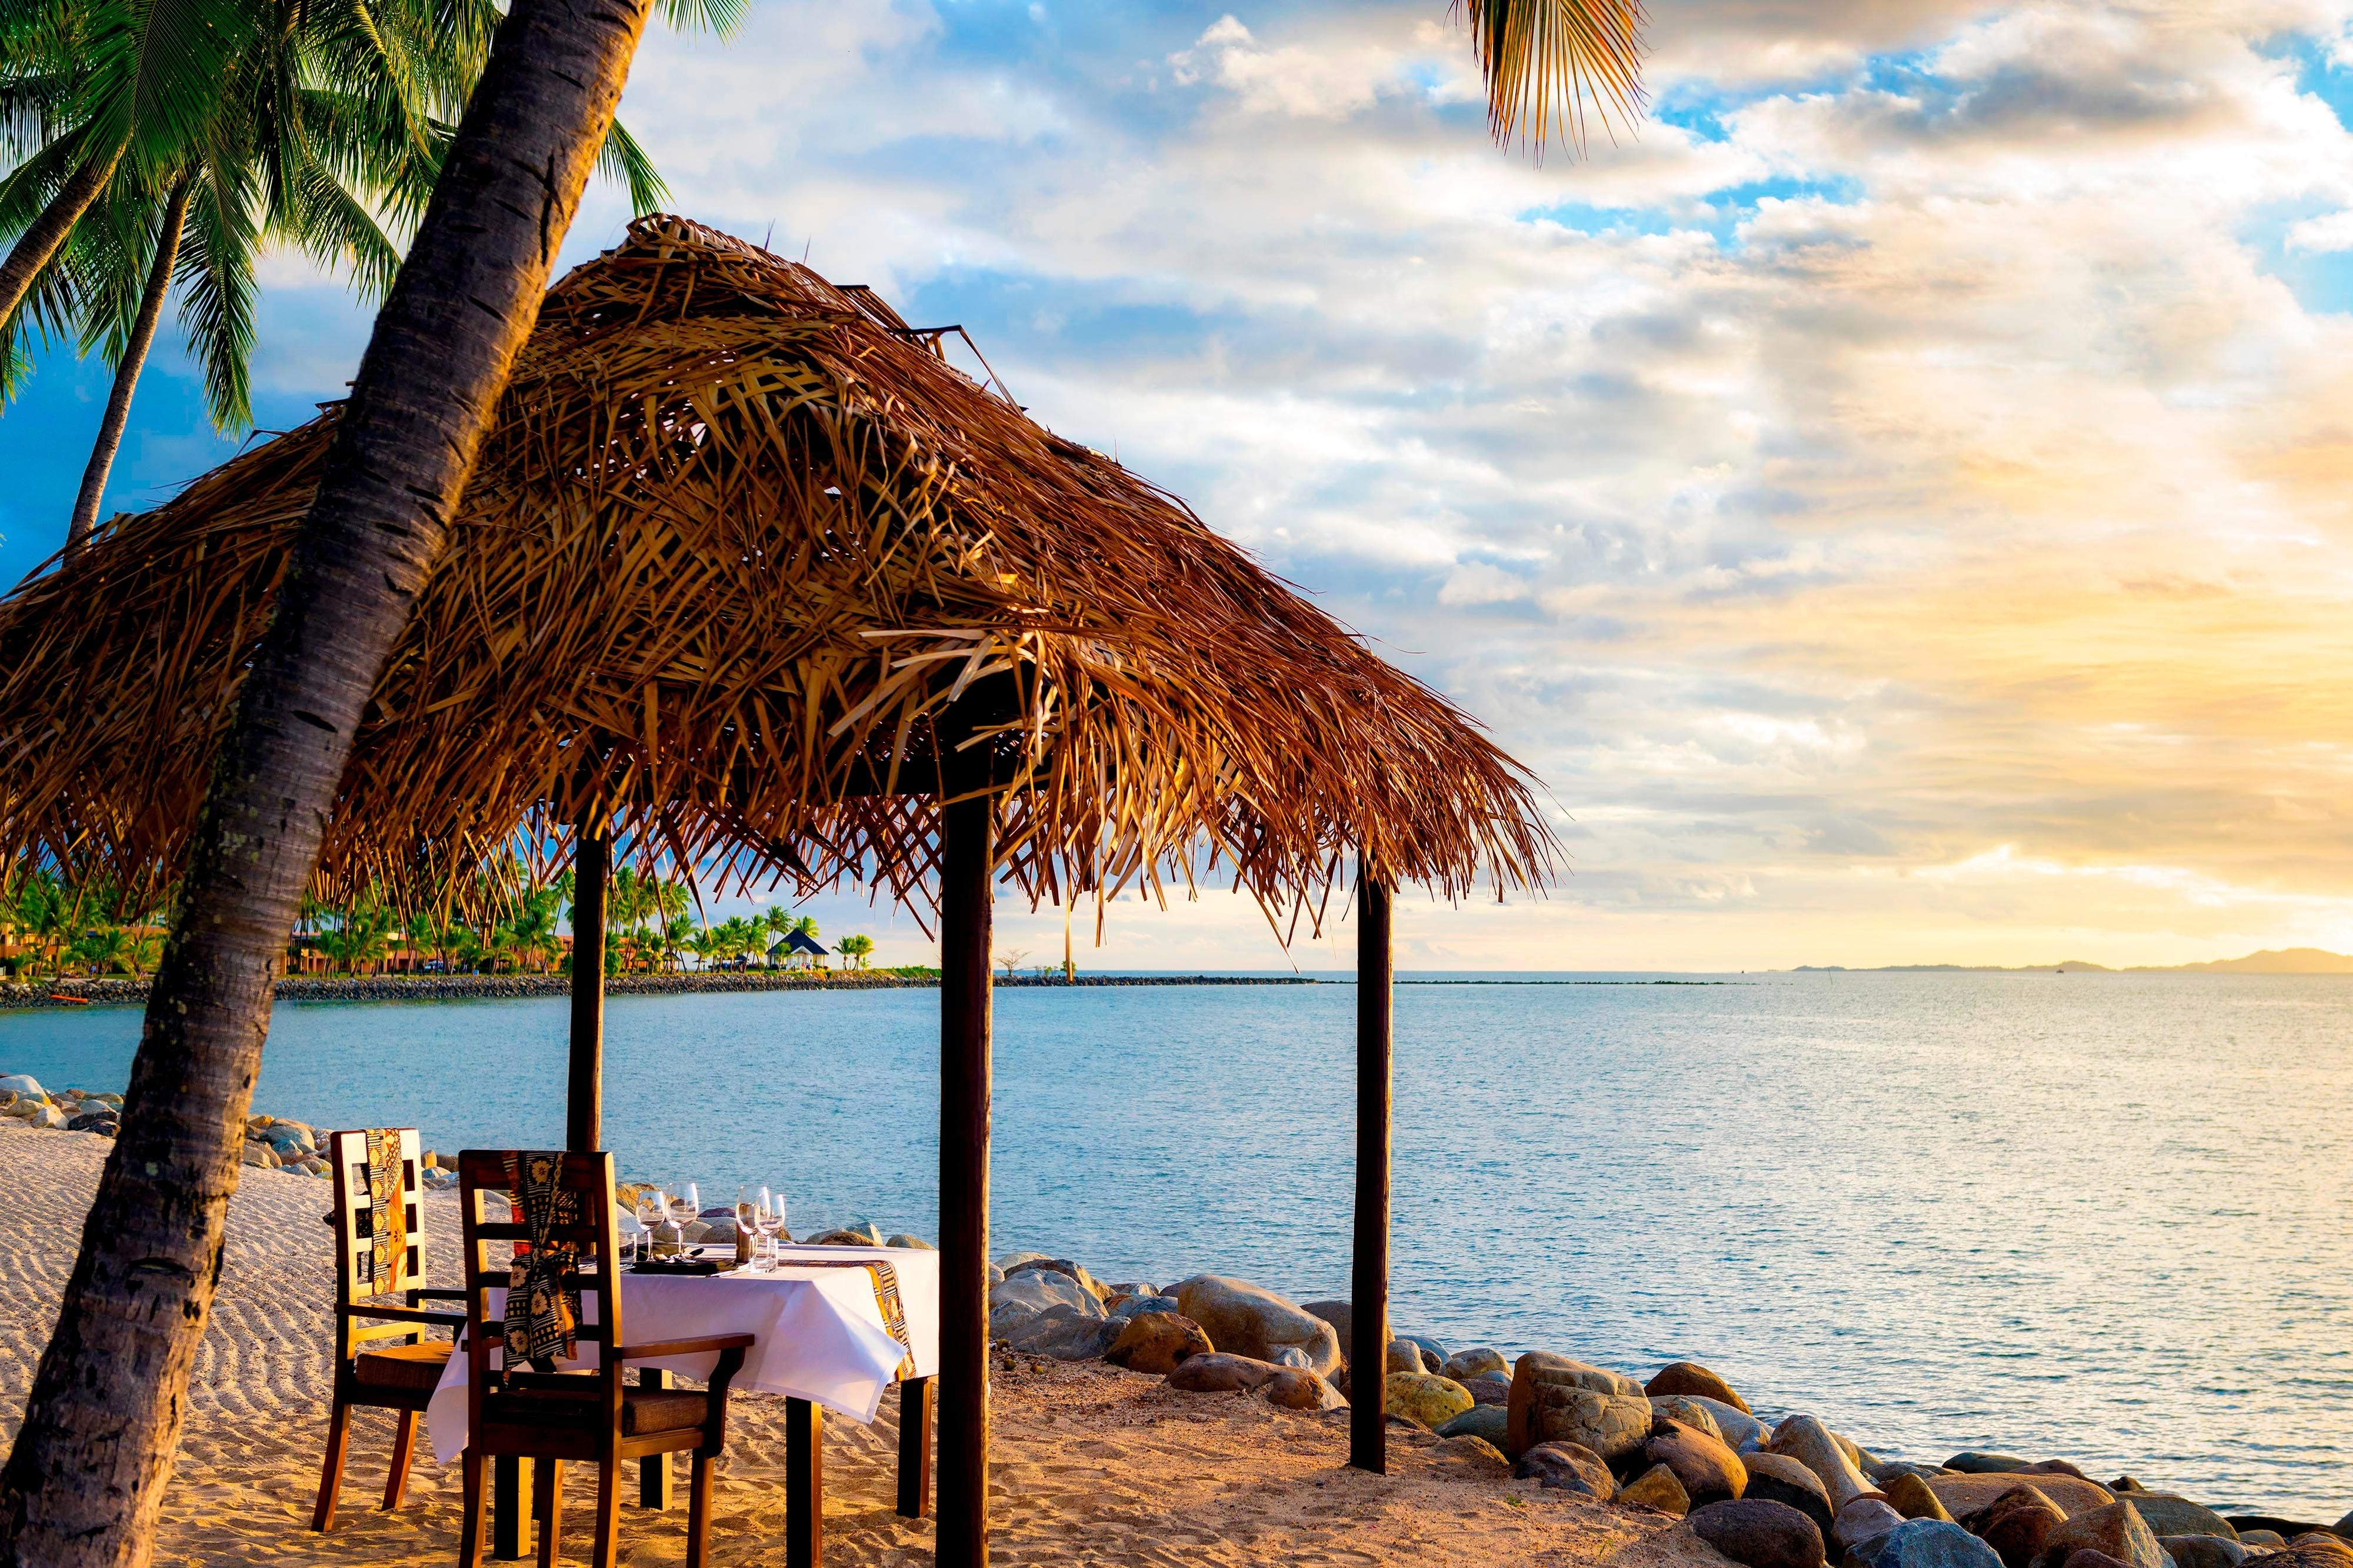 Kitchen Grill - Private Beachfront Dining